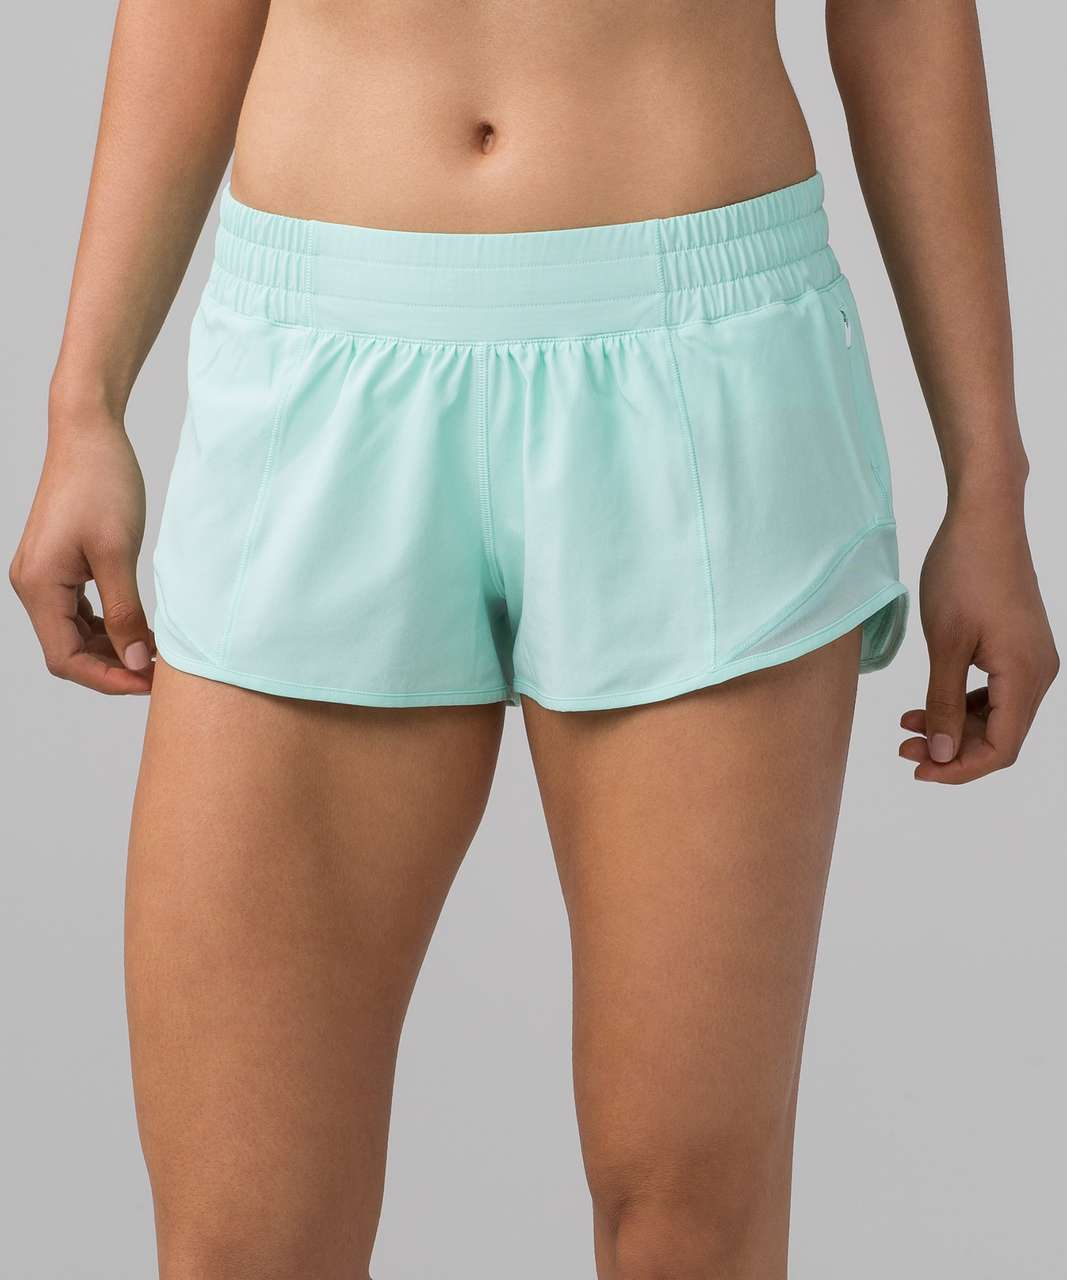 "Lululemon Hotty Hot Short II (2.5"") - Toothpaste"